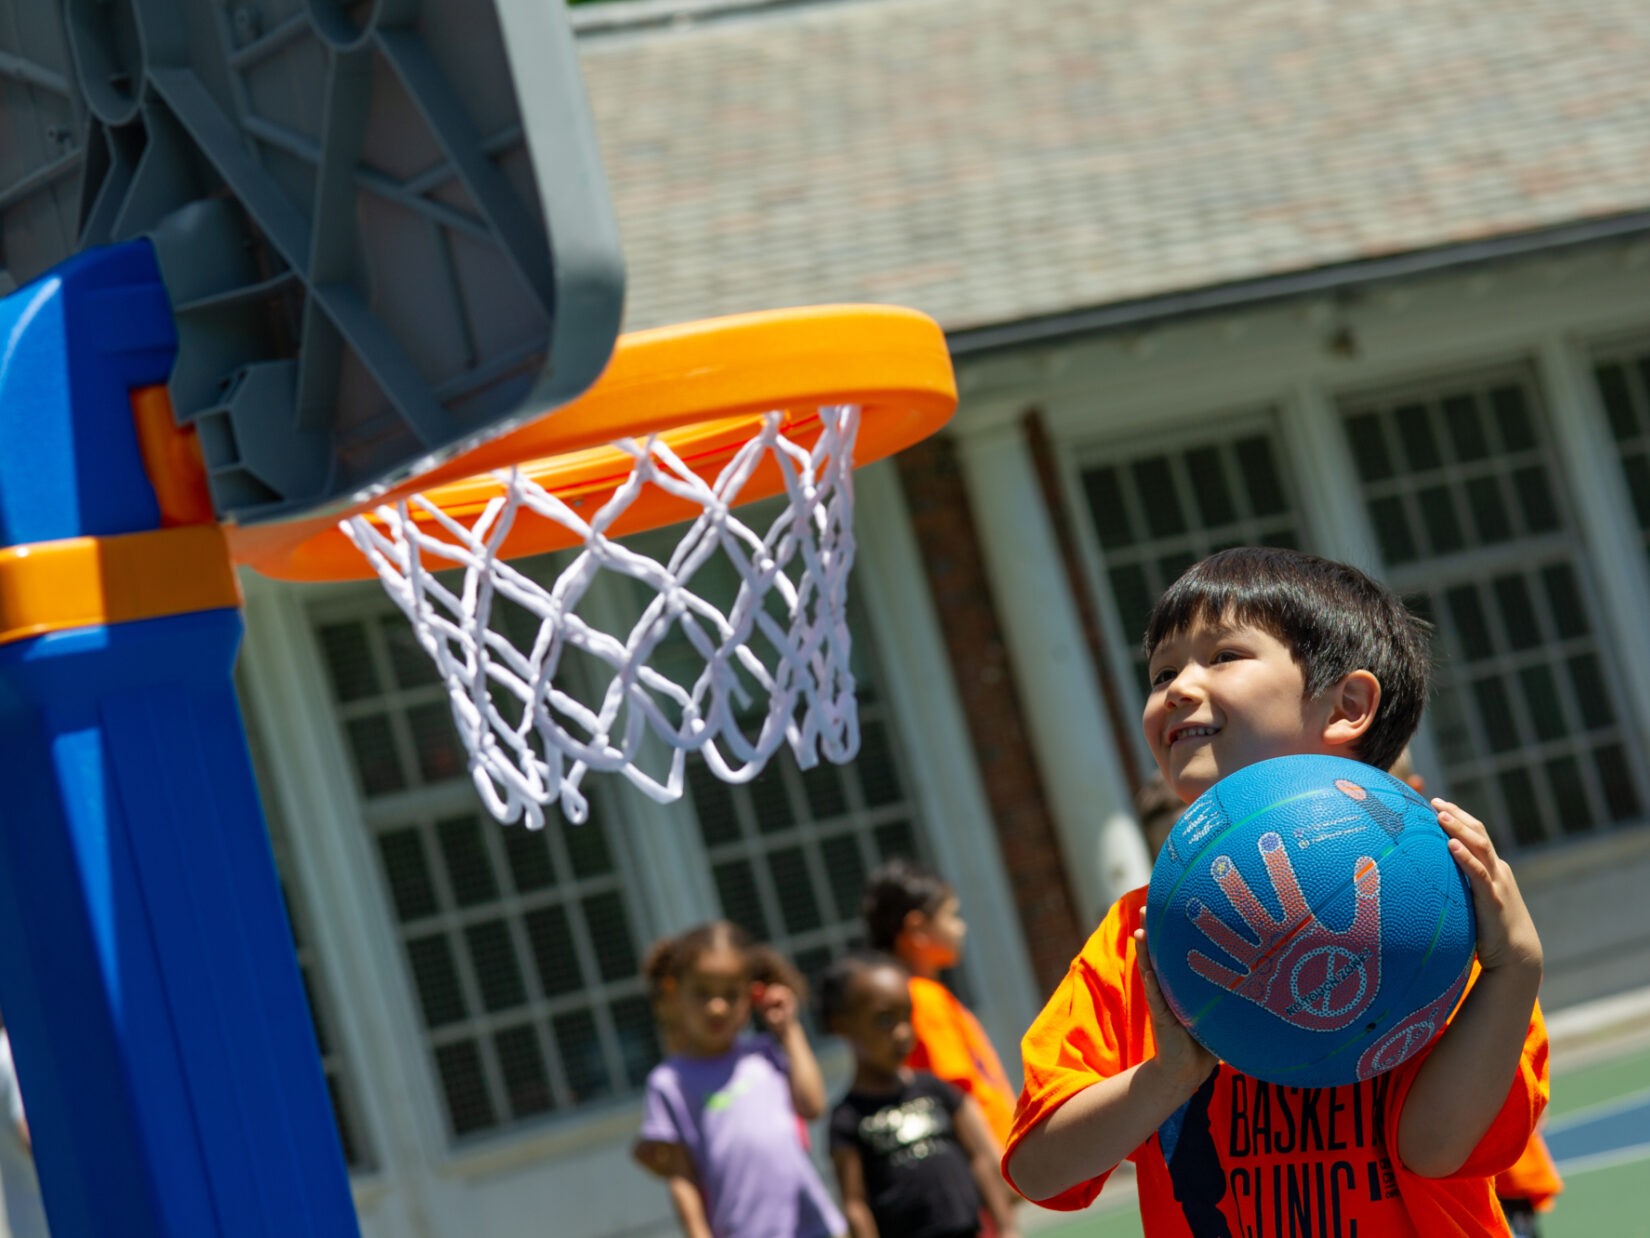 A young hoopster aiming for a toddler-appropriate basket